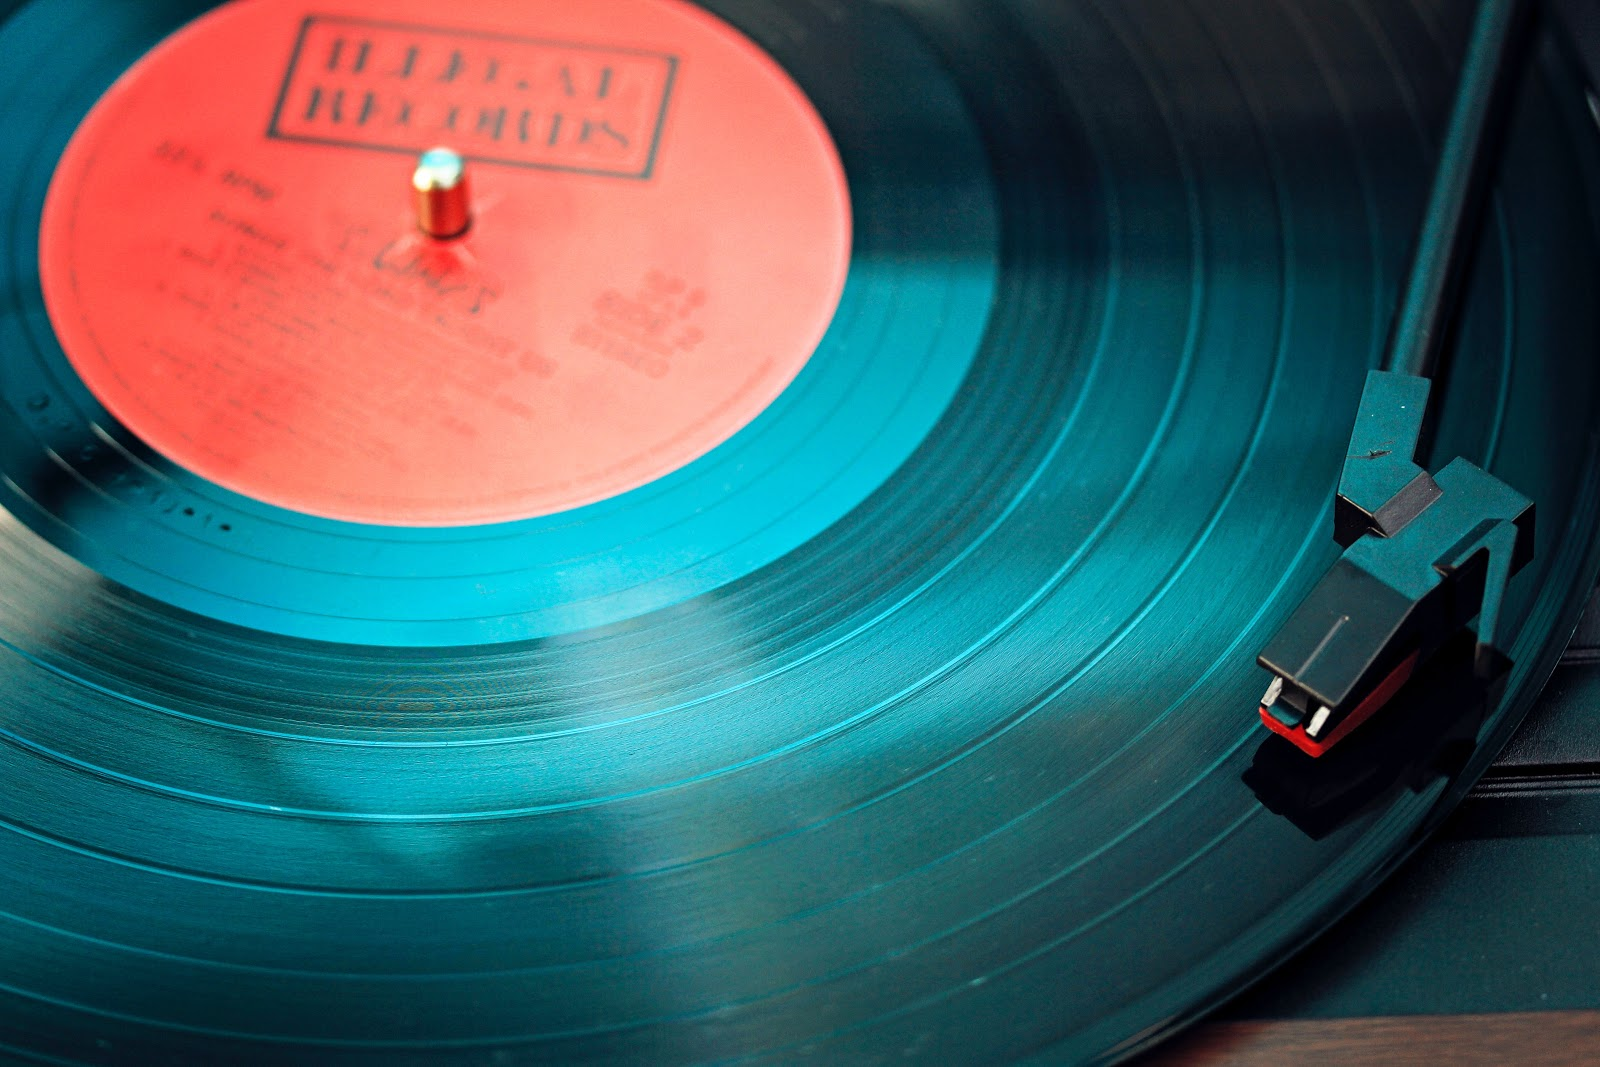 A record being played on a record player.